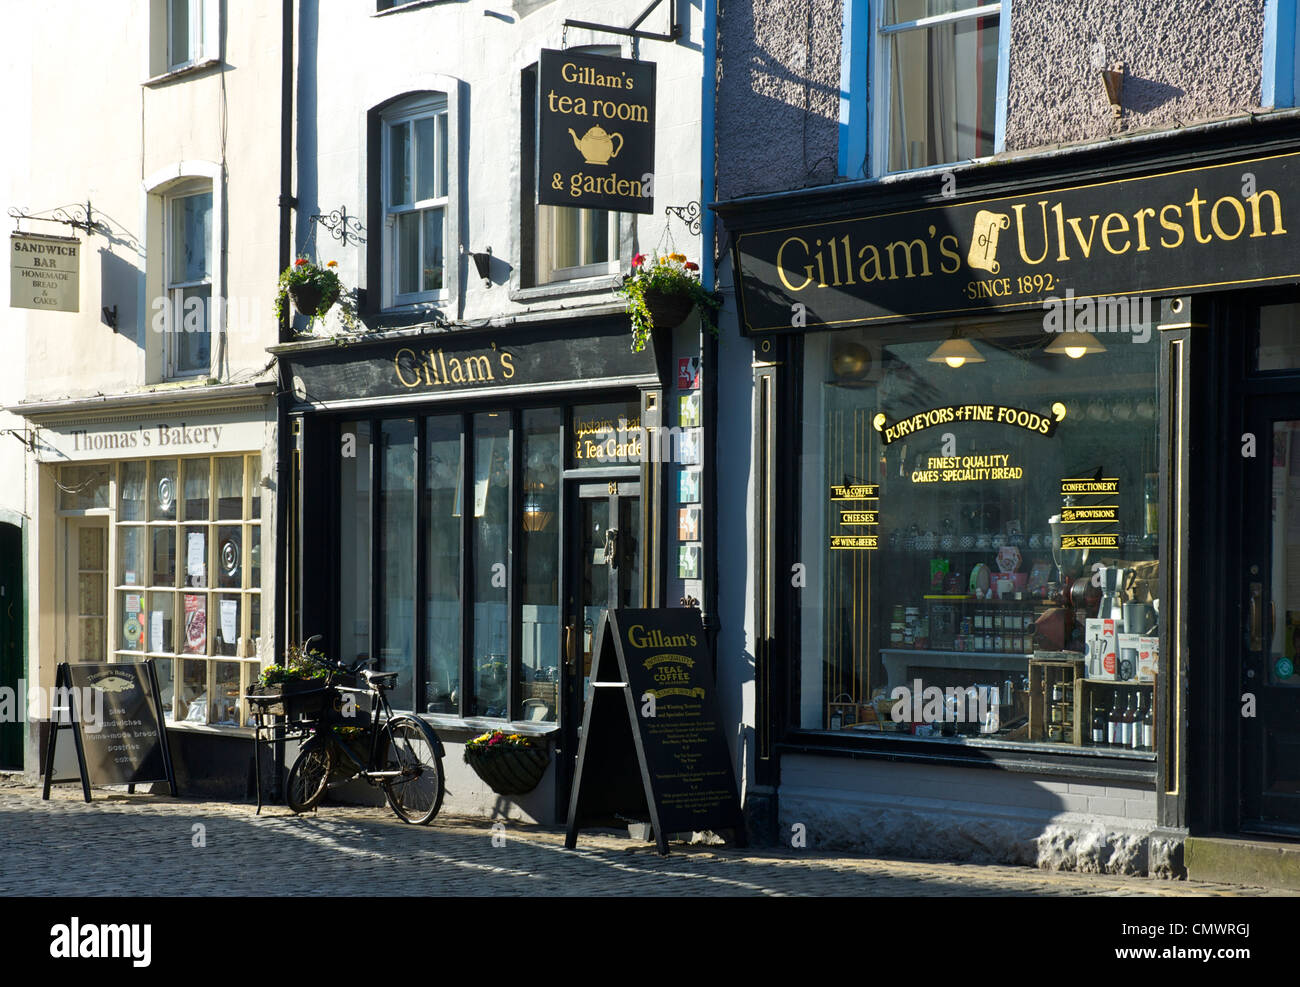 Small, independent shops on Market Street, in the town of Ulverston, Cumbria, England UK - Stock Image